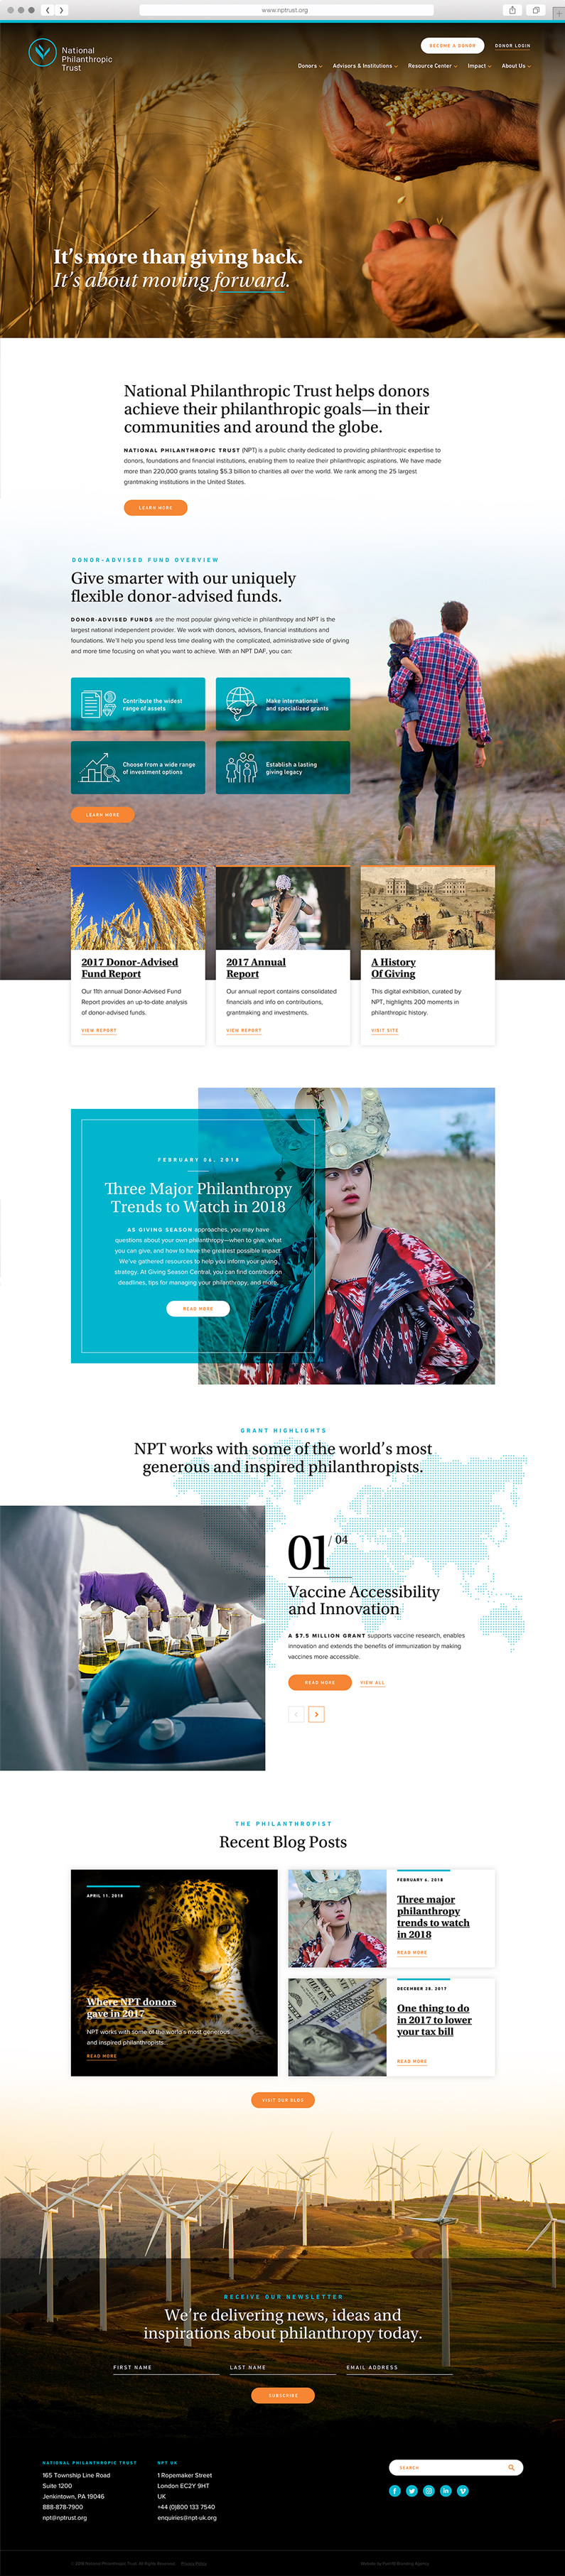 Web Design for National Philanthropic Trust, a Philadelphia area nonprofit public charity